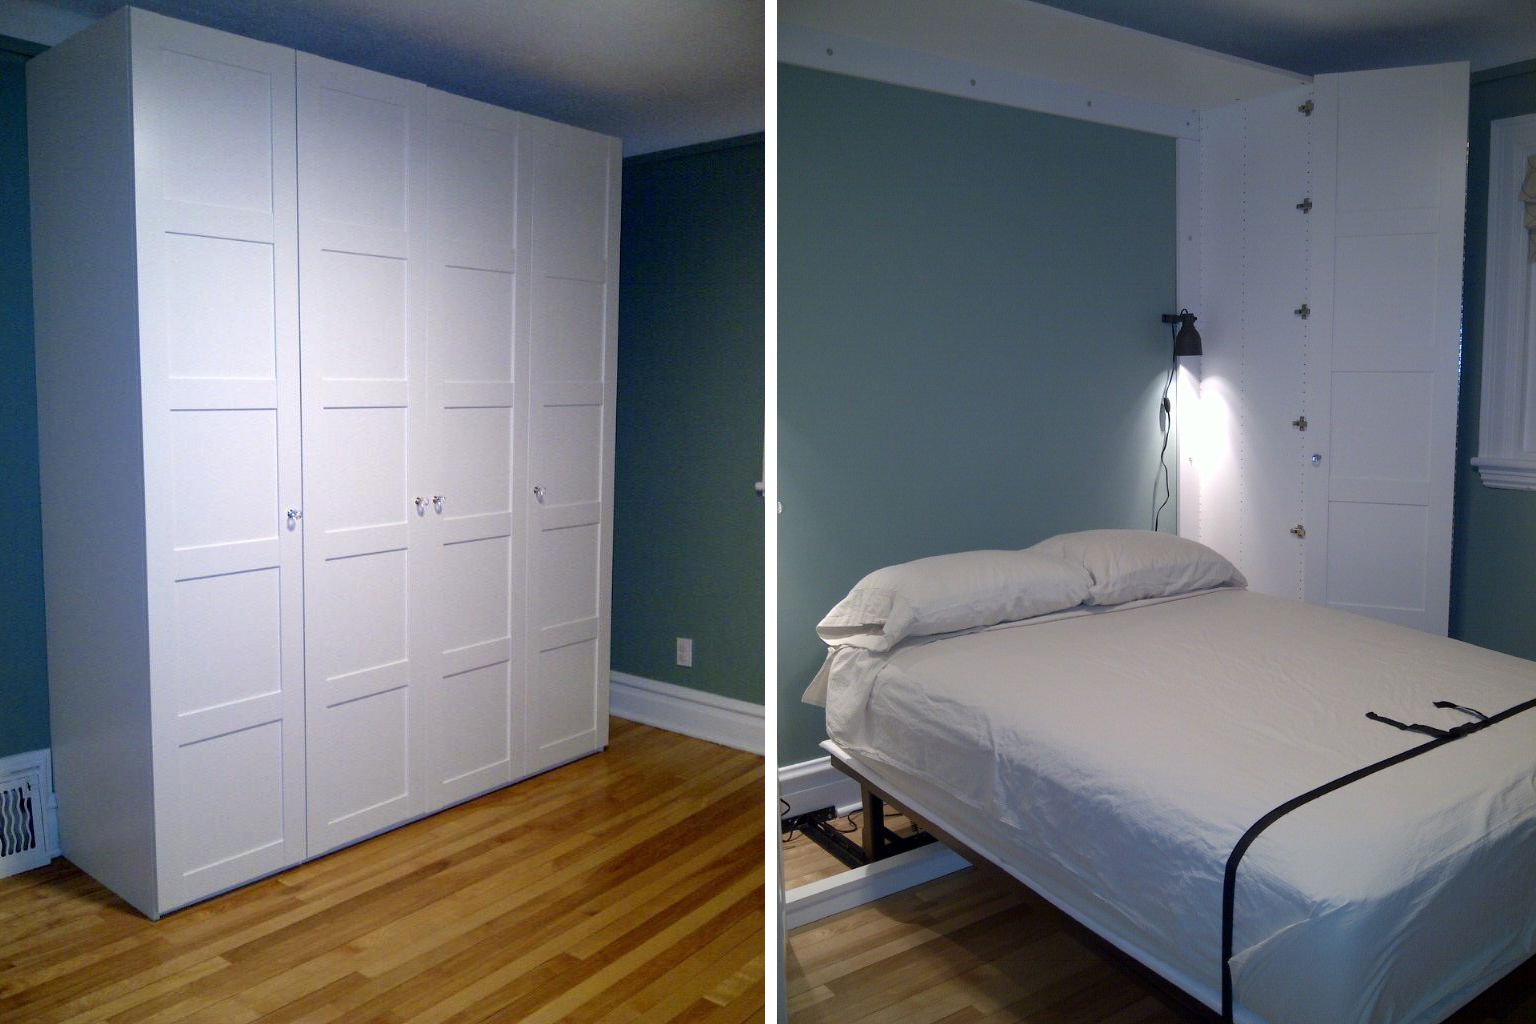 Wall bed ikea diy murphy bed wall ikea brint wall bed ikea wall bed ikea solutioingenieria Gallery